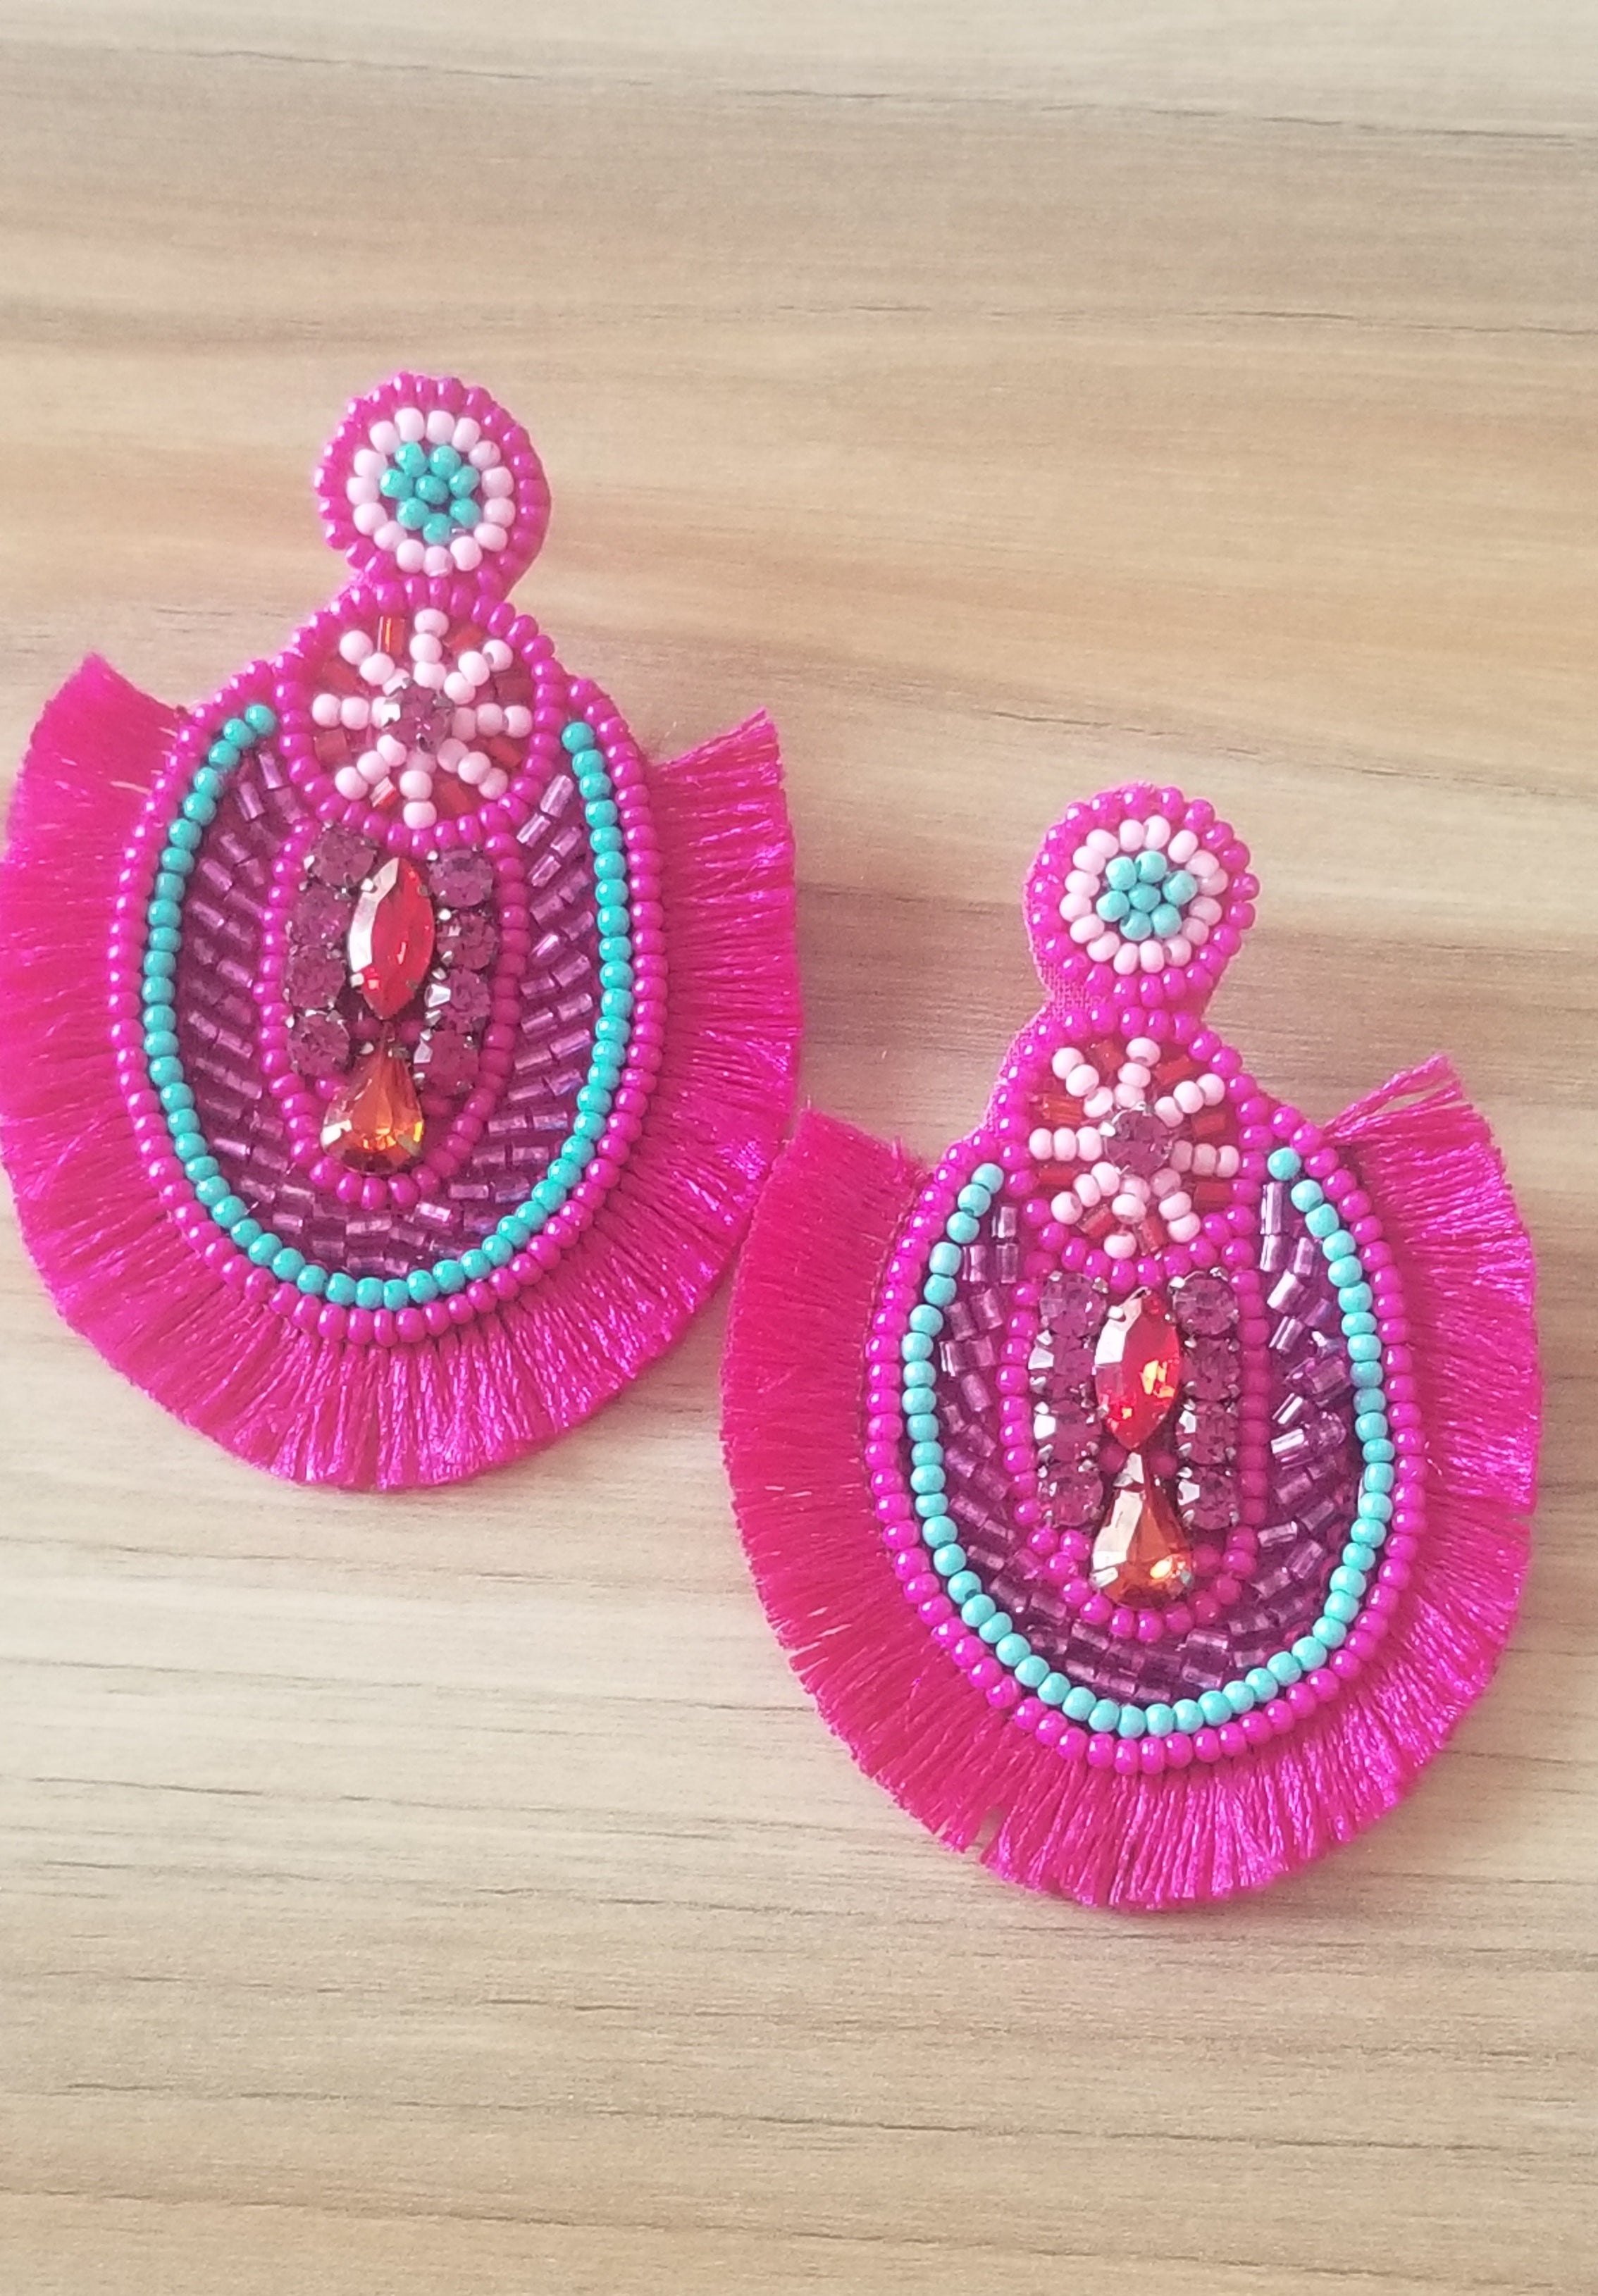 Hina Multicolored Seed Beaded Earrings with Fringes